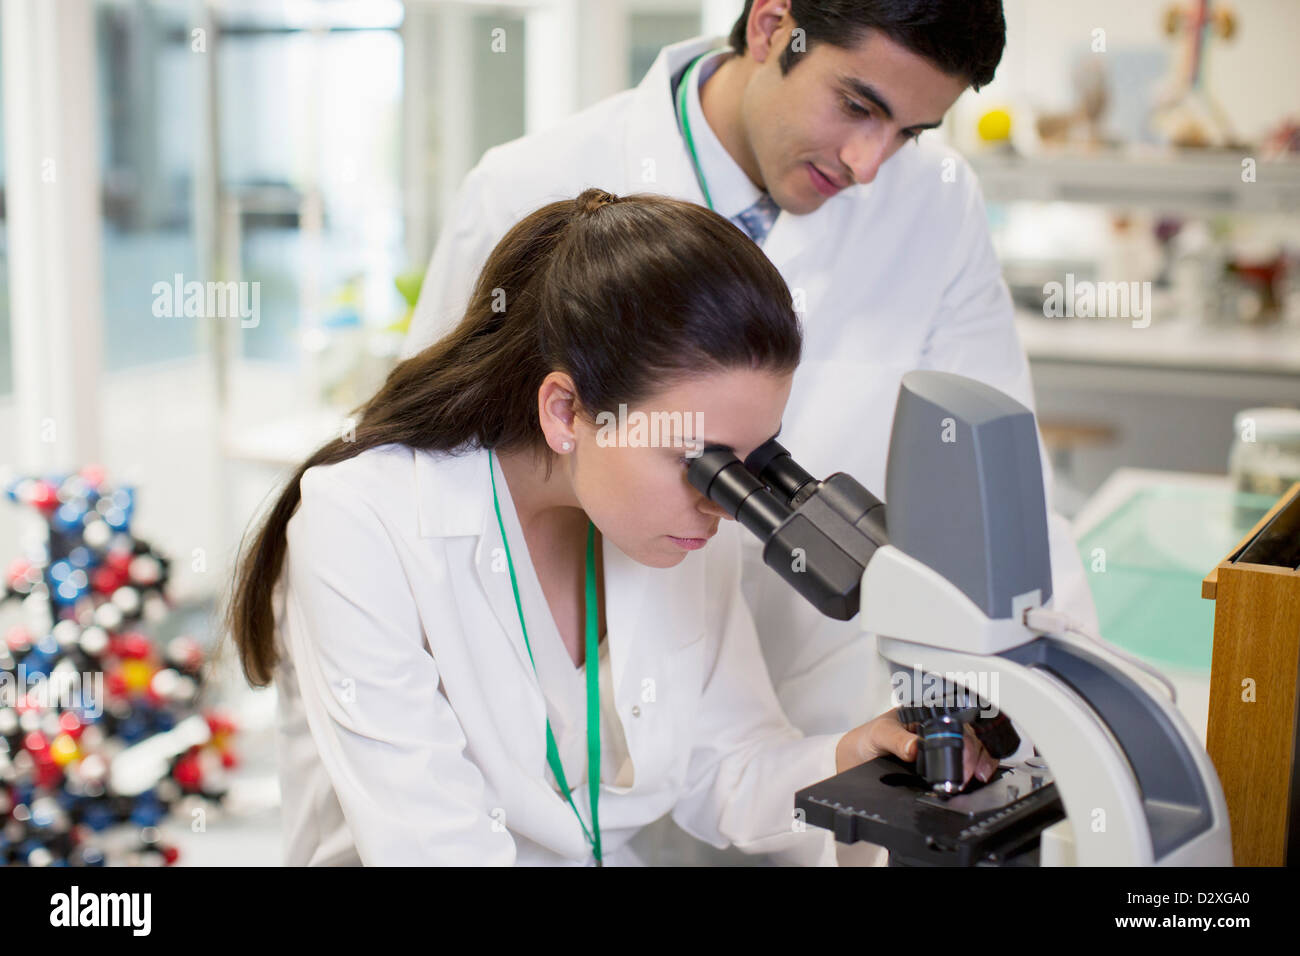 Scientists using microscope in laboratory - Stock Image